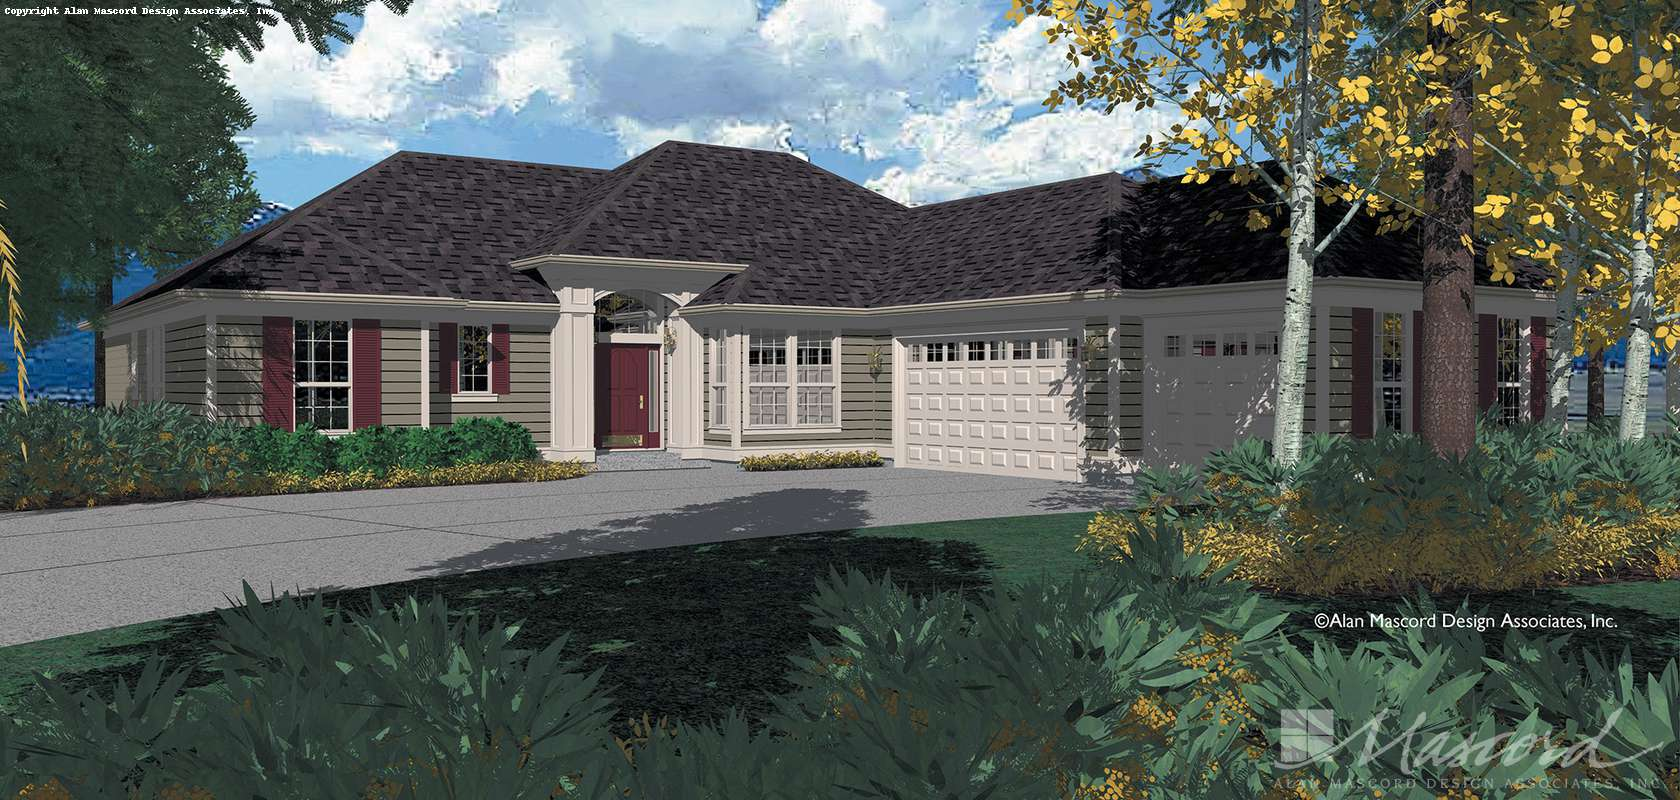 Mascord House Plan 1216: The Shawnee